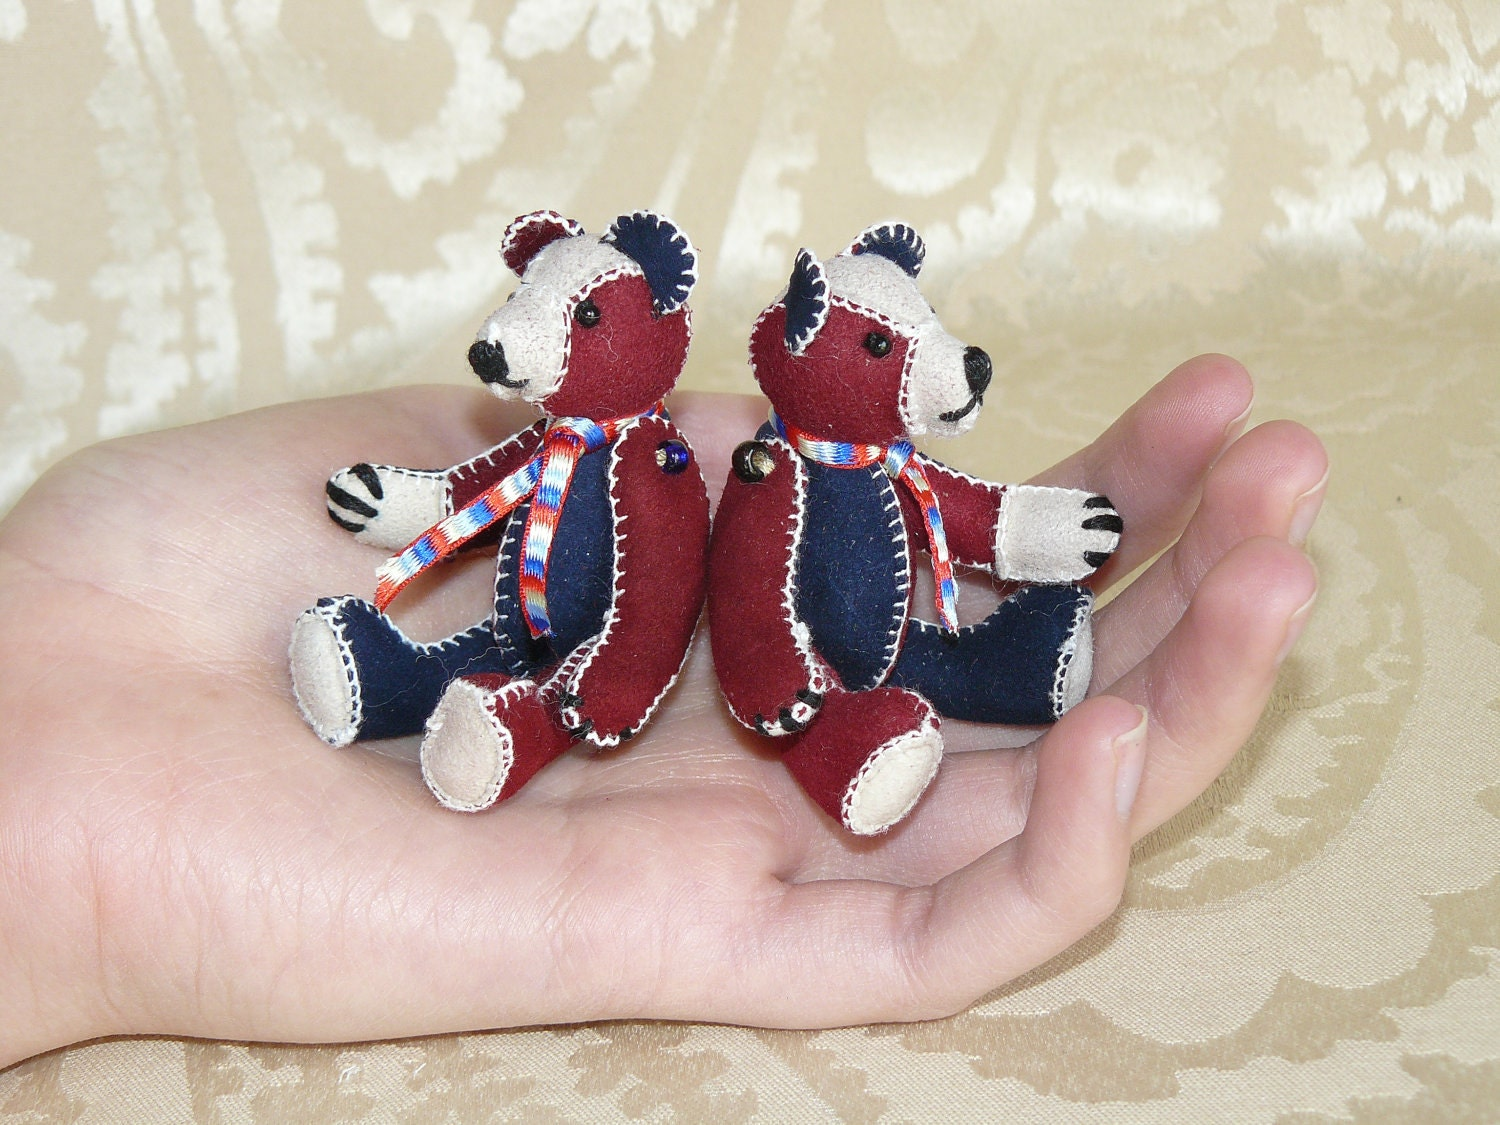 London 2012, Olympics, Queens Diamond Jubilee, Custom made, Miniature bear, artist bear, red, white, blue, leather, hand sewn.